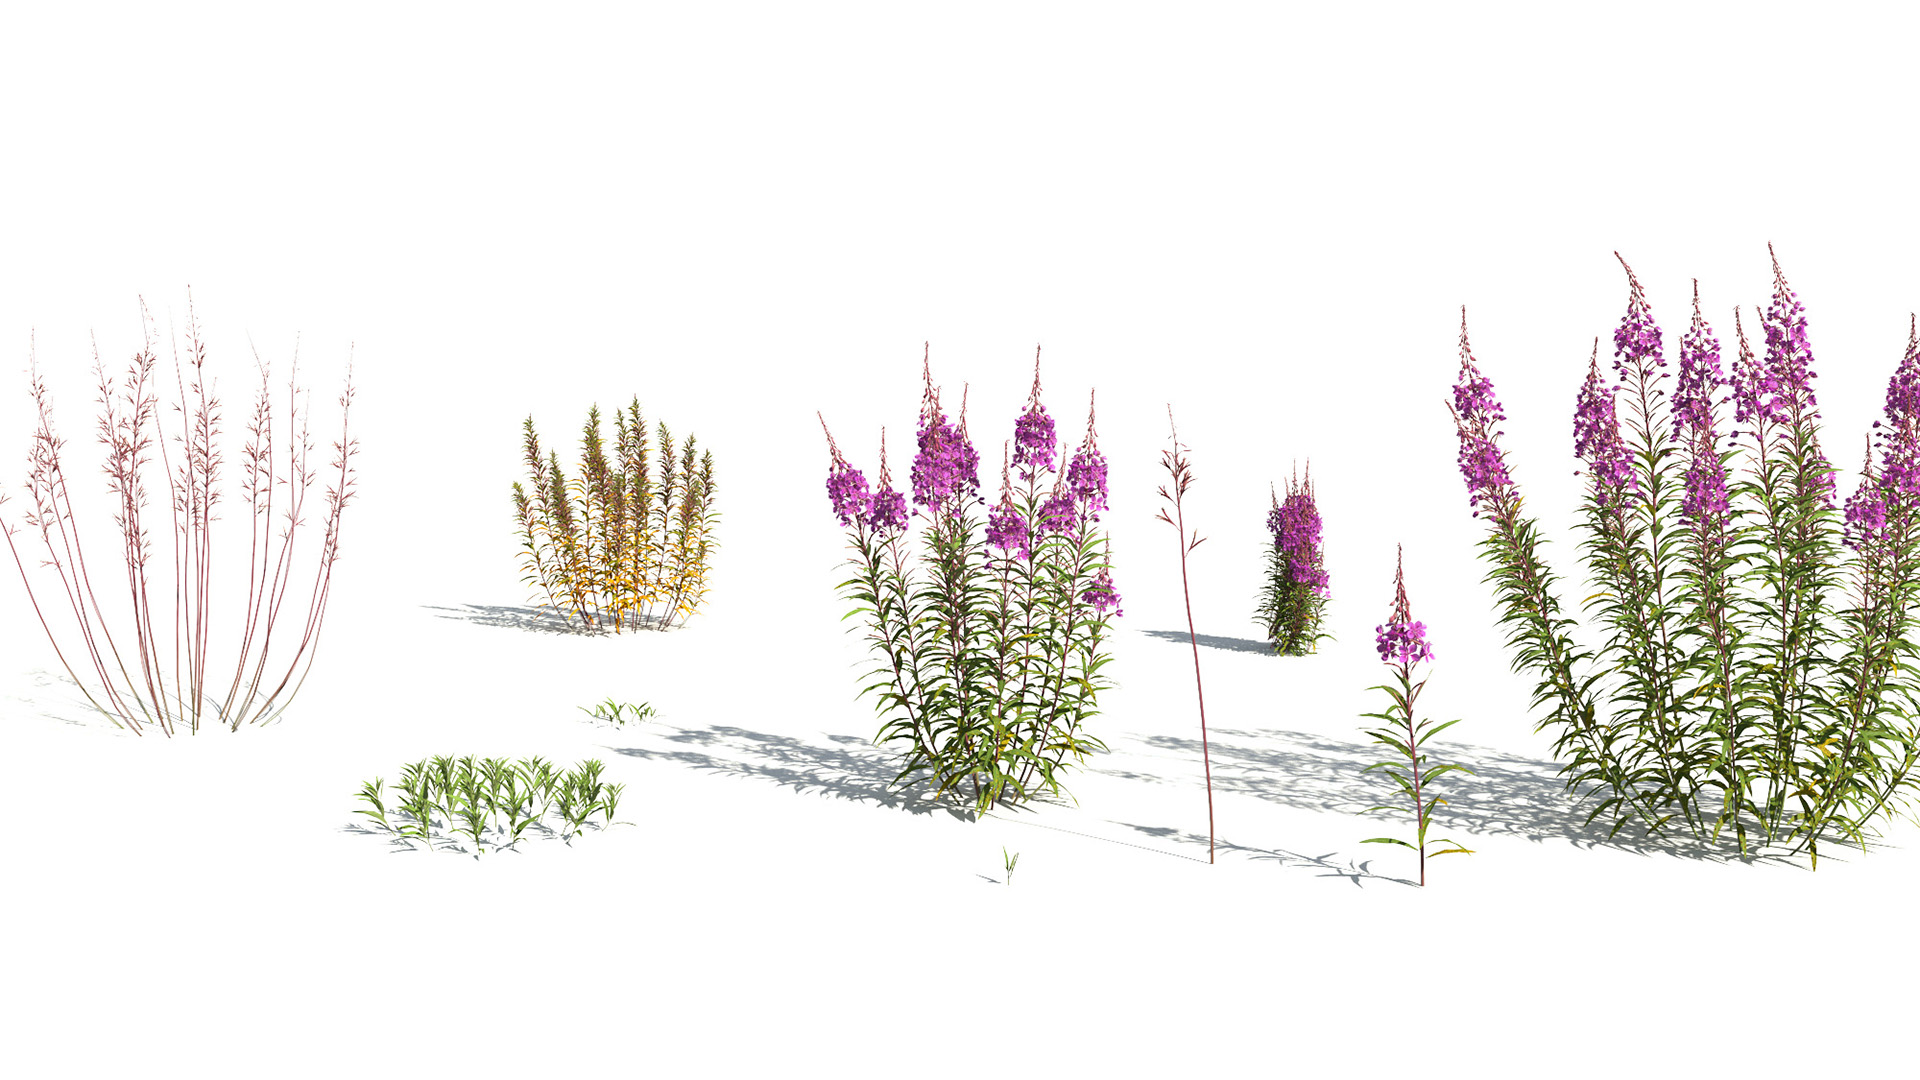 3D model of the Fireweed Chamerion angustifolium different presets